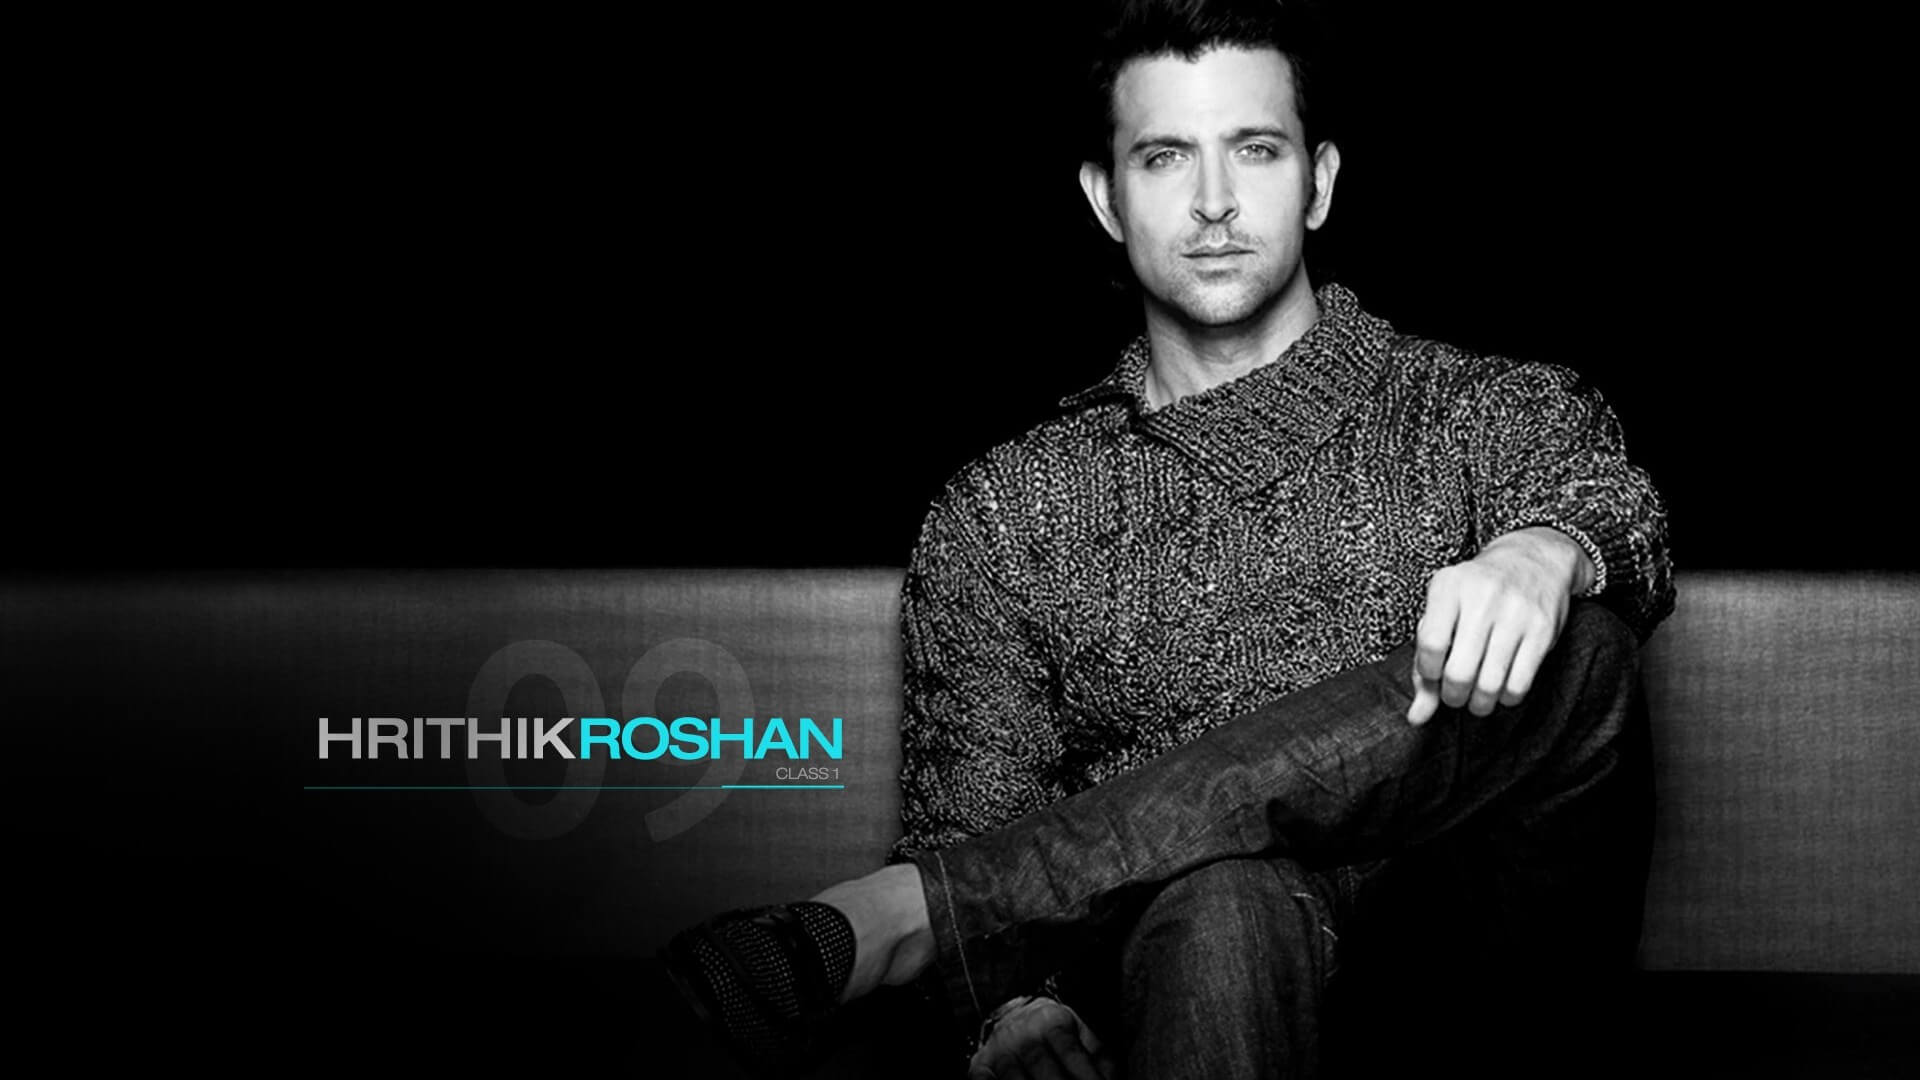 Hrithik Roshan Age, Movie, Height, Wife, Photos(images), Height, News, Dance, Son, Birthday, Family, Biography, Kids, Awards, Education,religion, Instagram, Twitter, Facebook, Wiki, Youtube, ( (103)